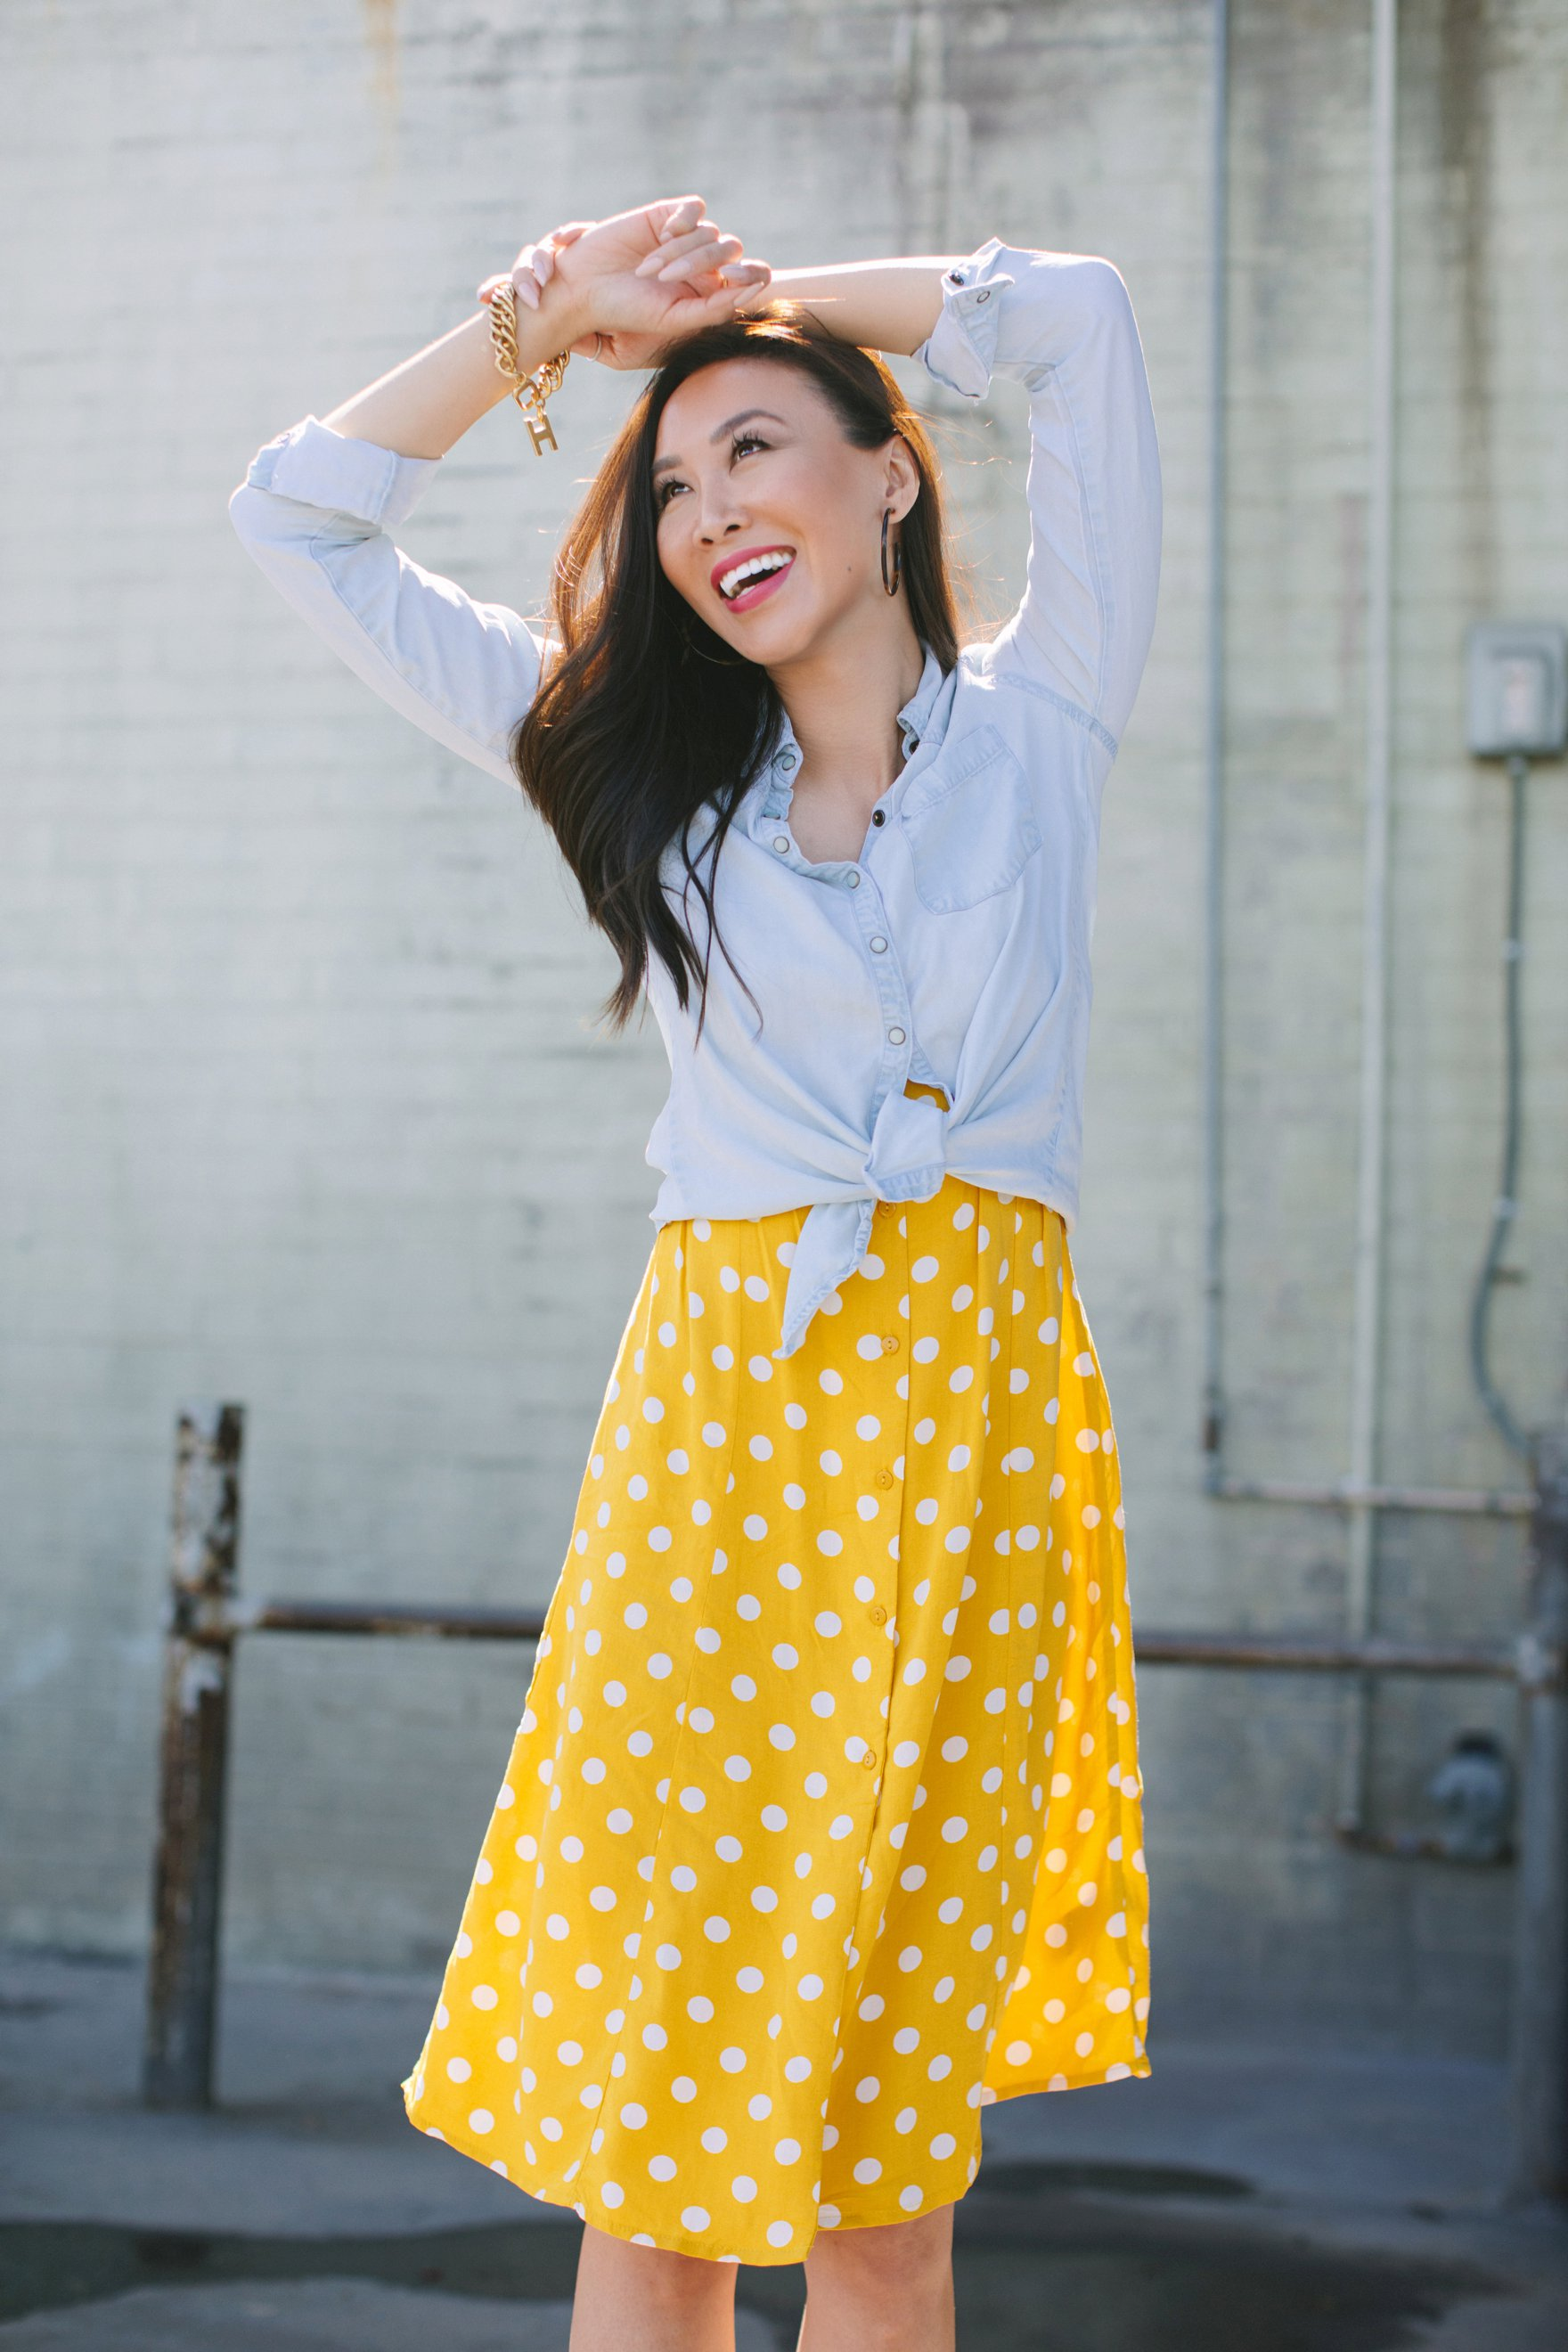 Yellow and white polka dot dress forever 21 paired with a chambray top featuring India hicks bracelet and other jewels lifestyle blogger Diana Elizabeth with hand over head pose